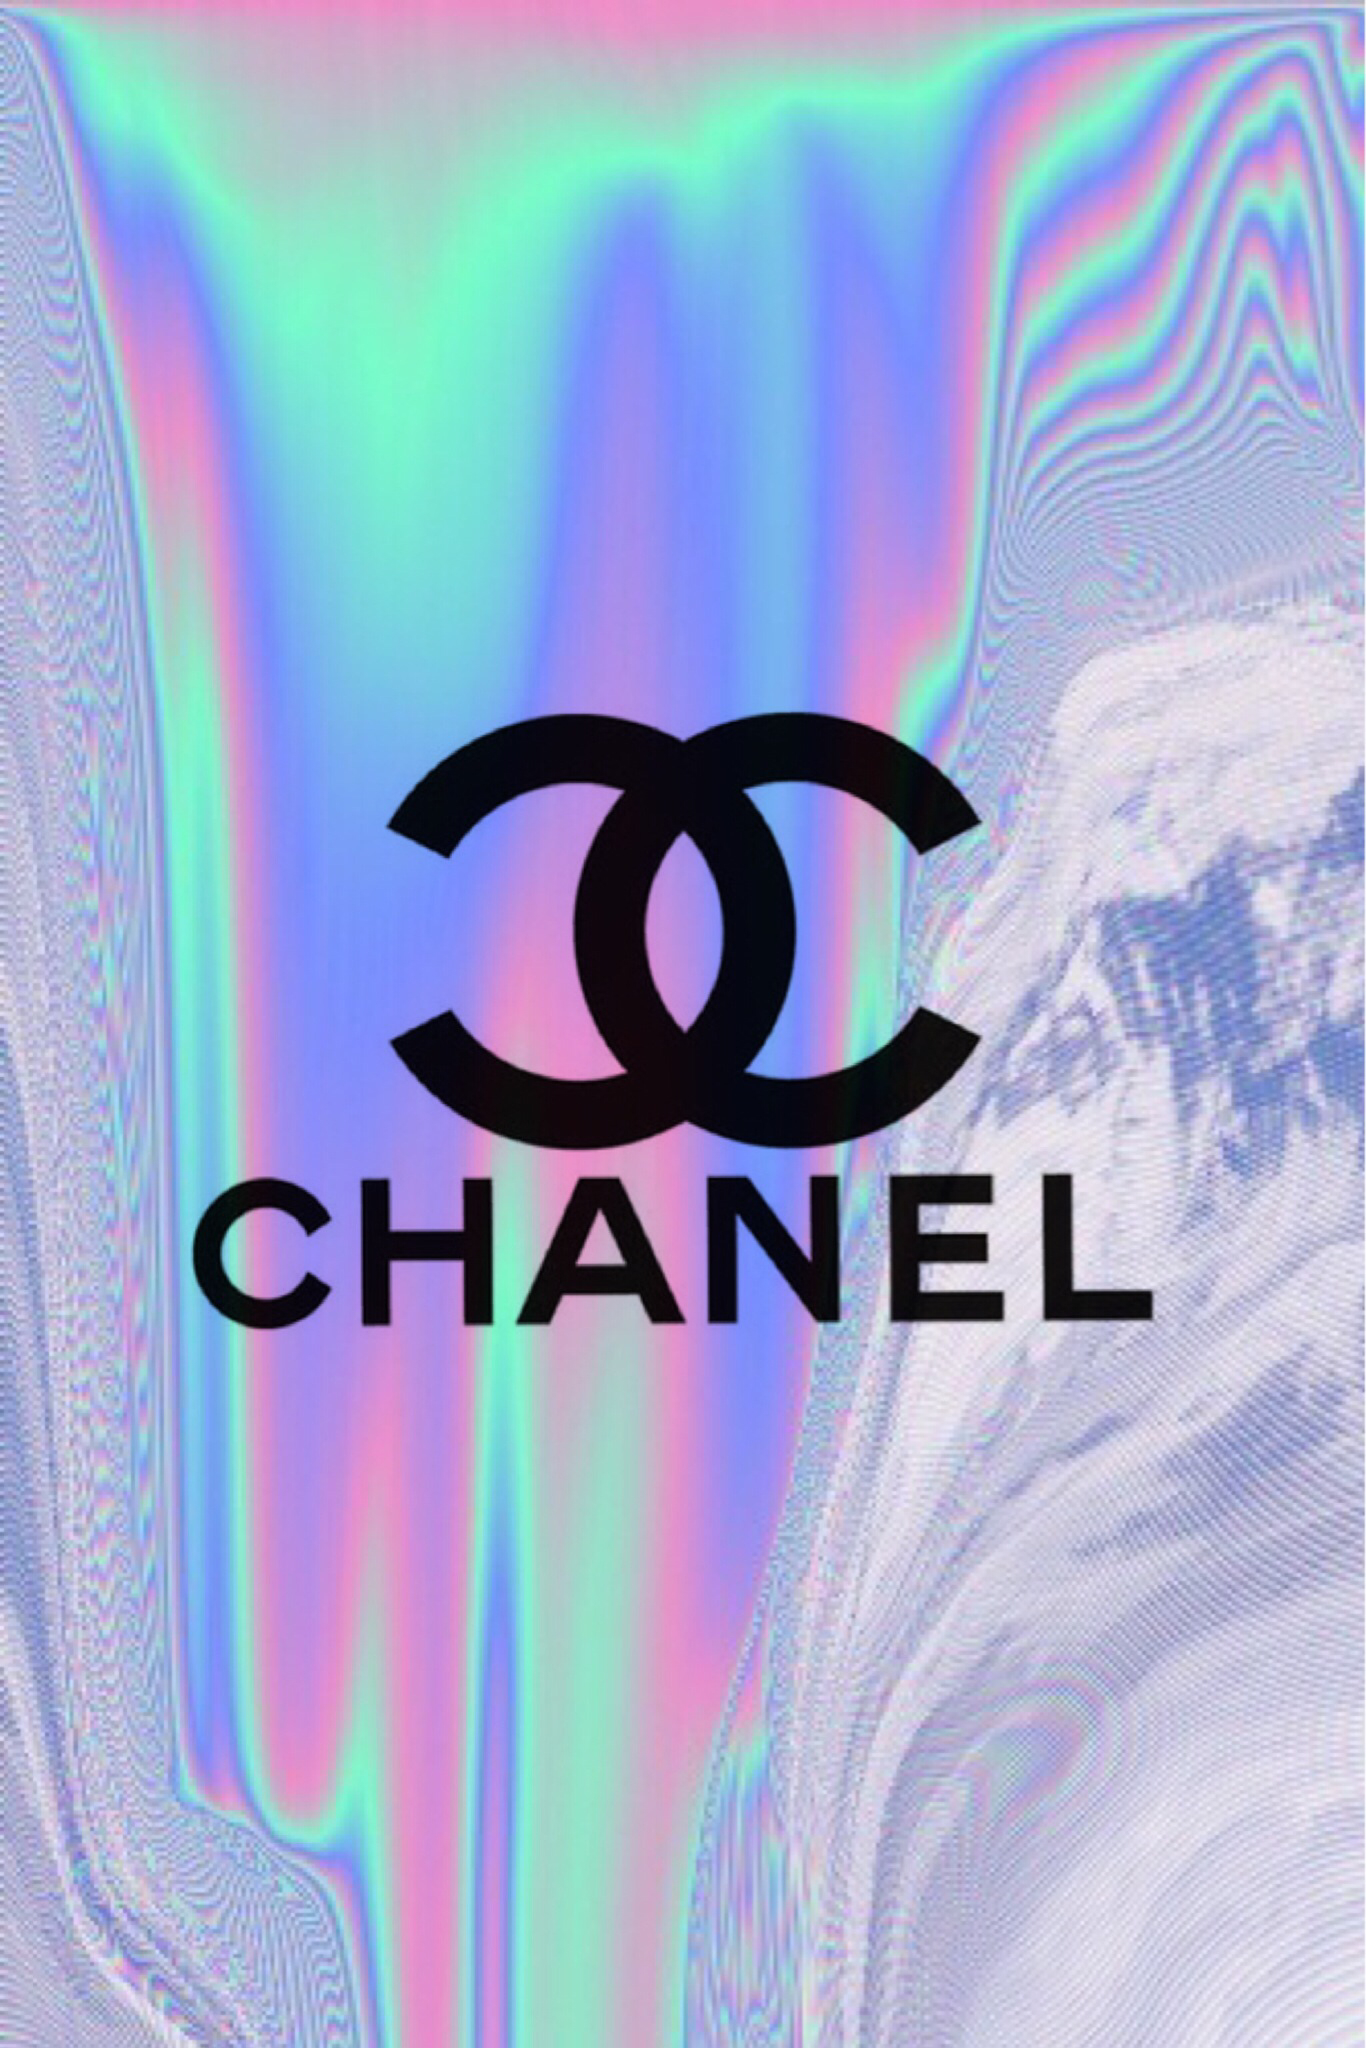 Chanel-holographi-these-are-the-sort-of-colours-i-want-my-fop-to-be-based-around-wallpaper-wp5005849